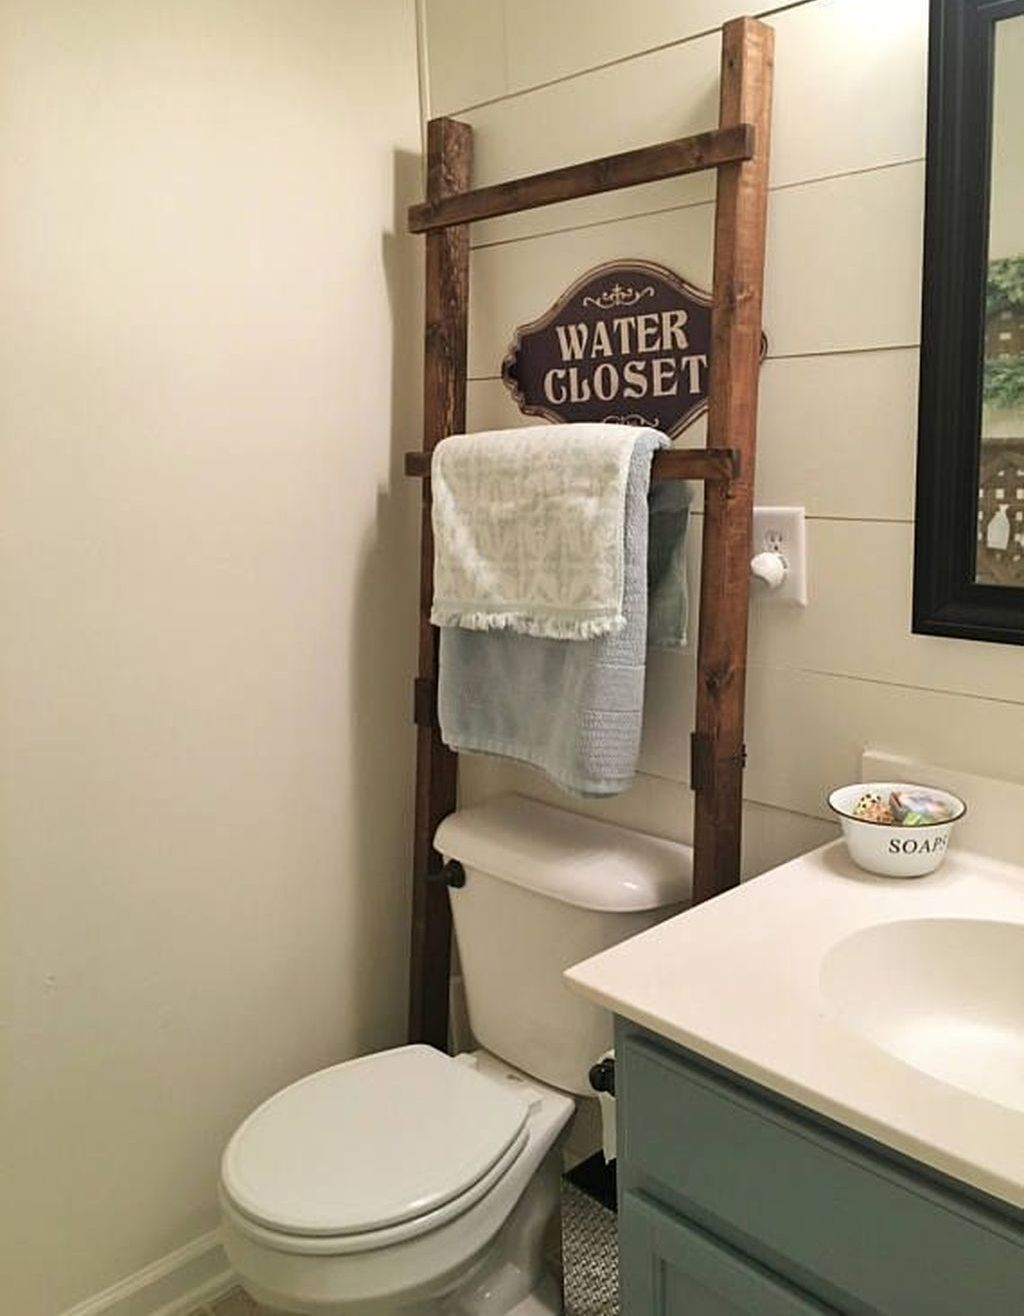 Impress Your Visitors with These Adorable HalfBathroom Styles